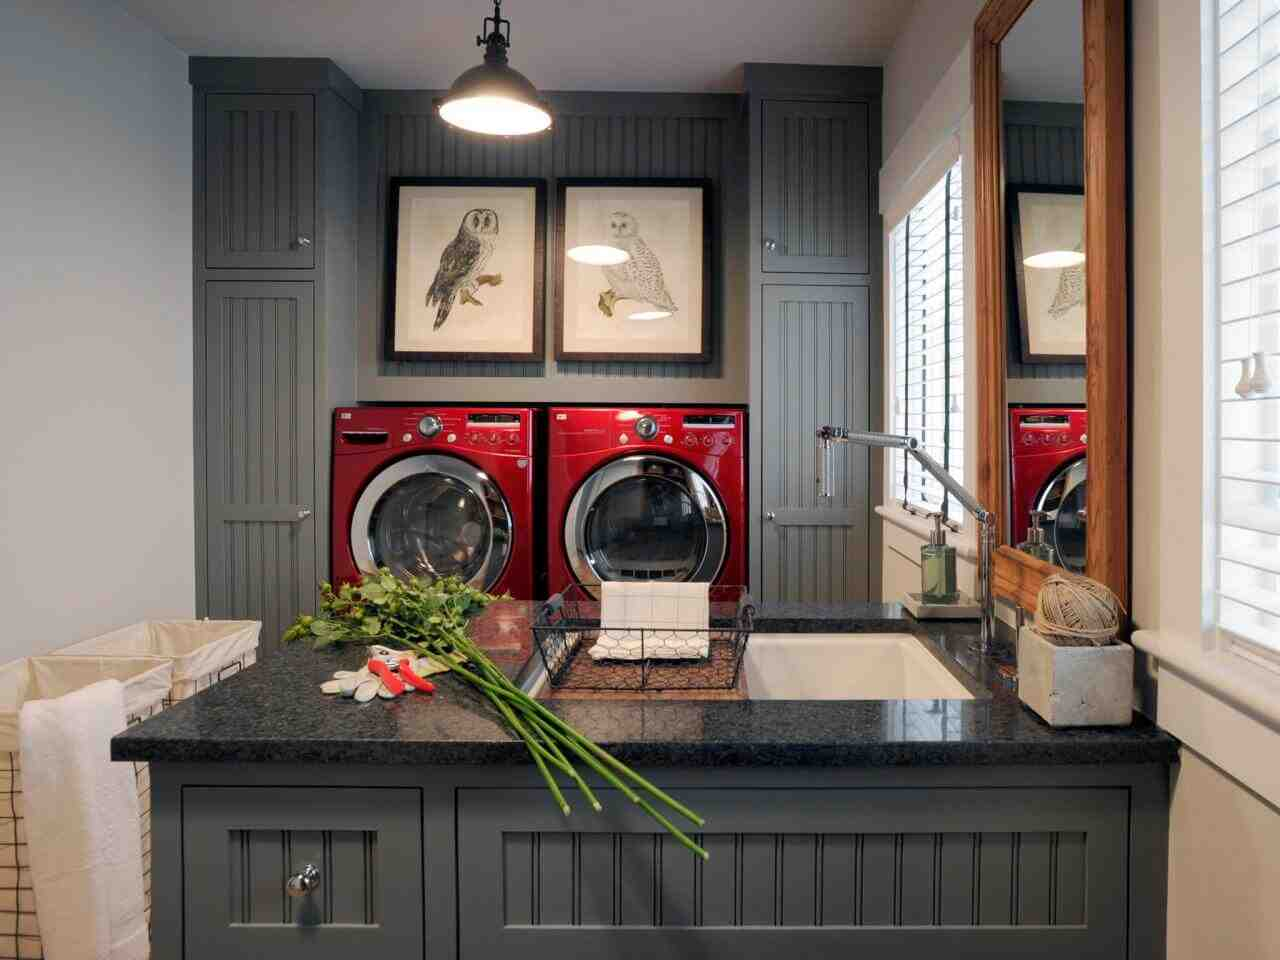 Laundry Room in Garage Decorating Ideas - Decor Ideas